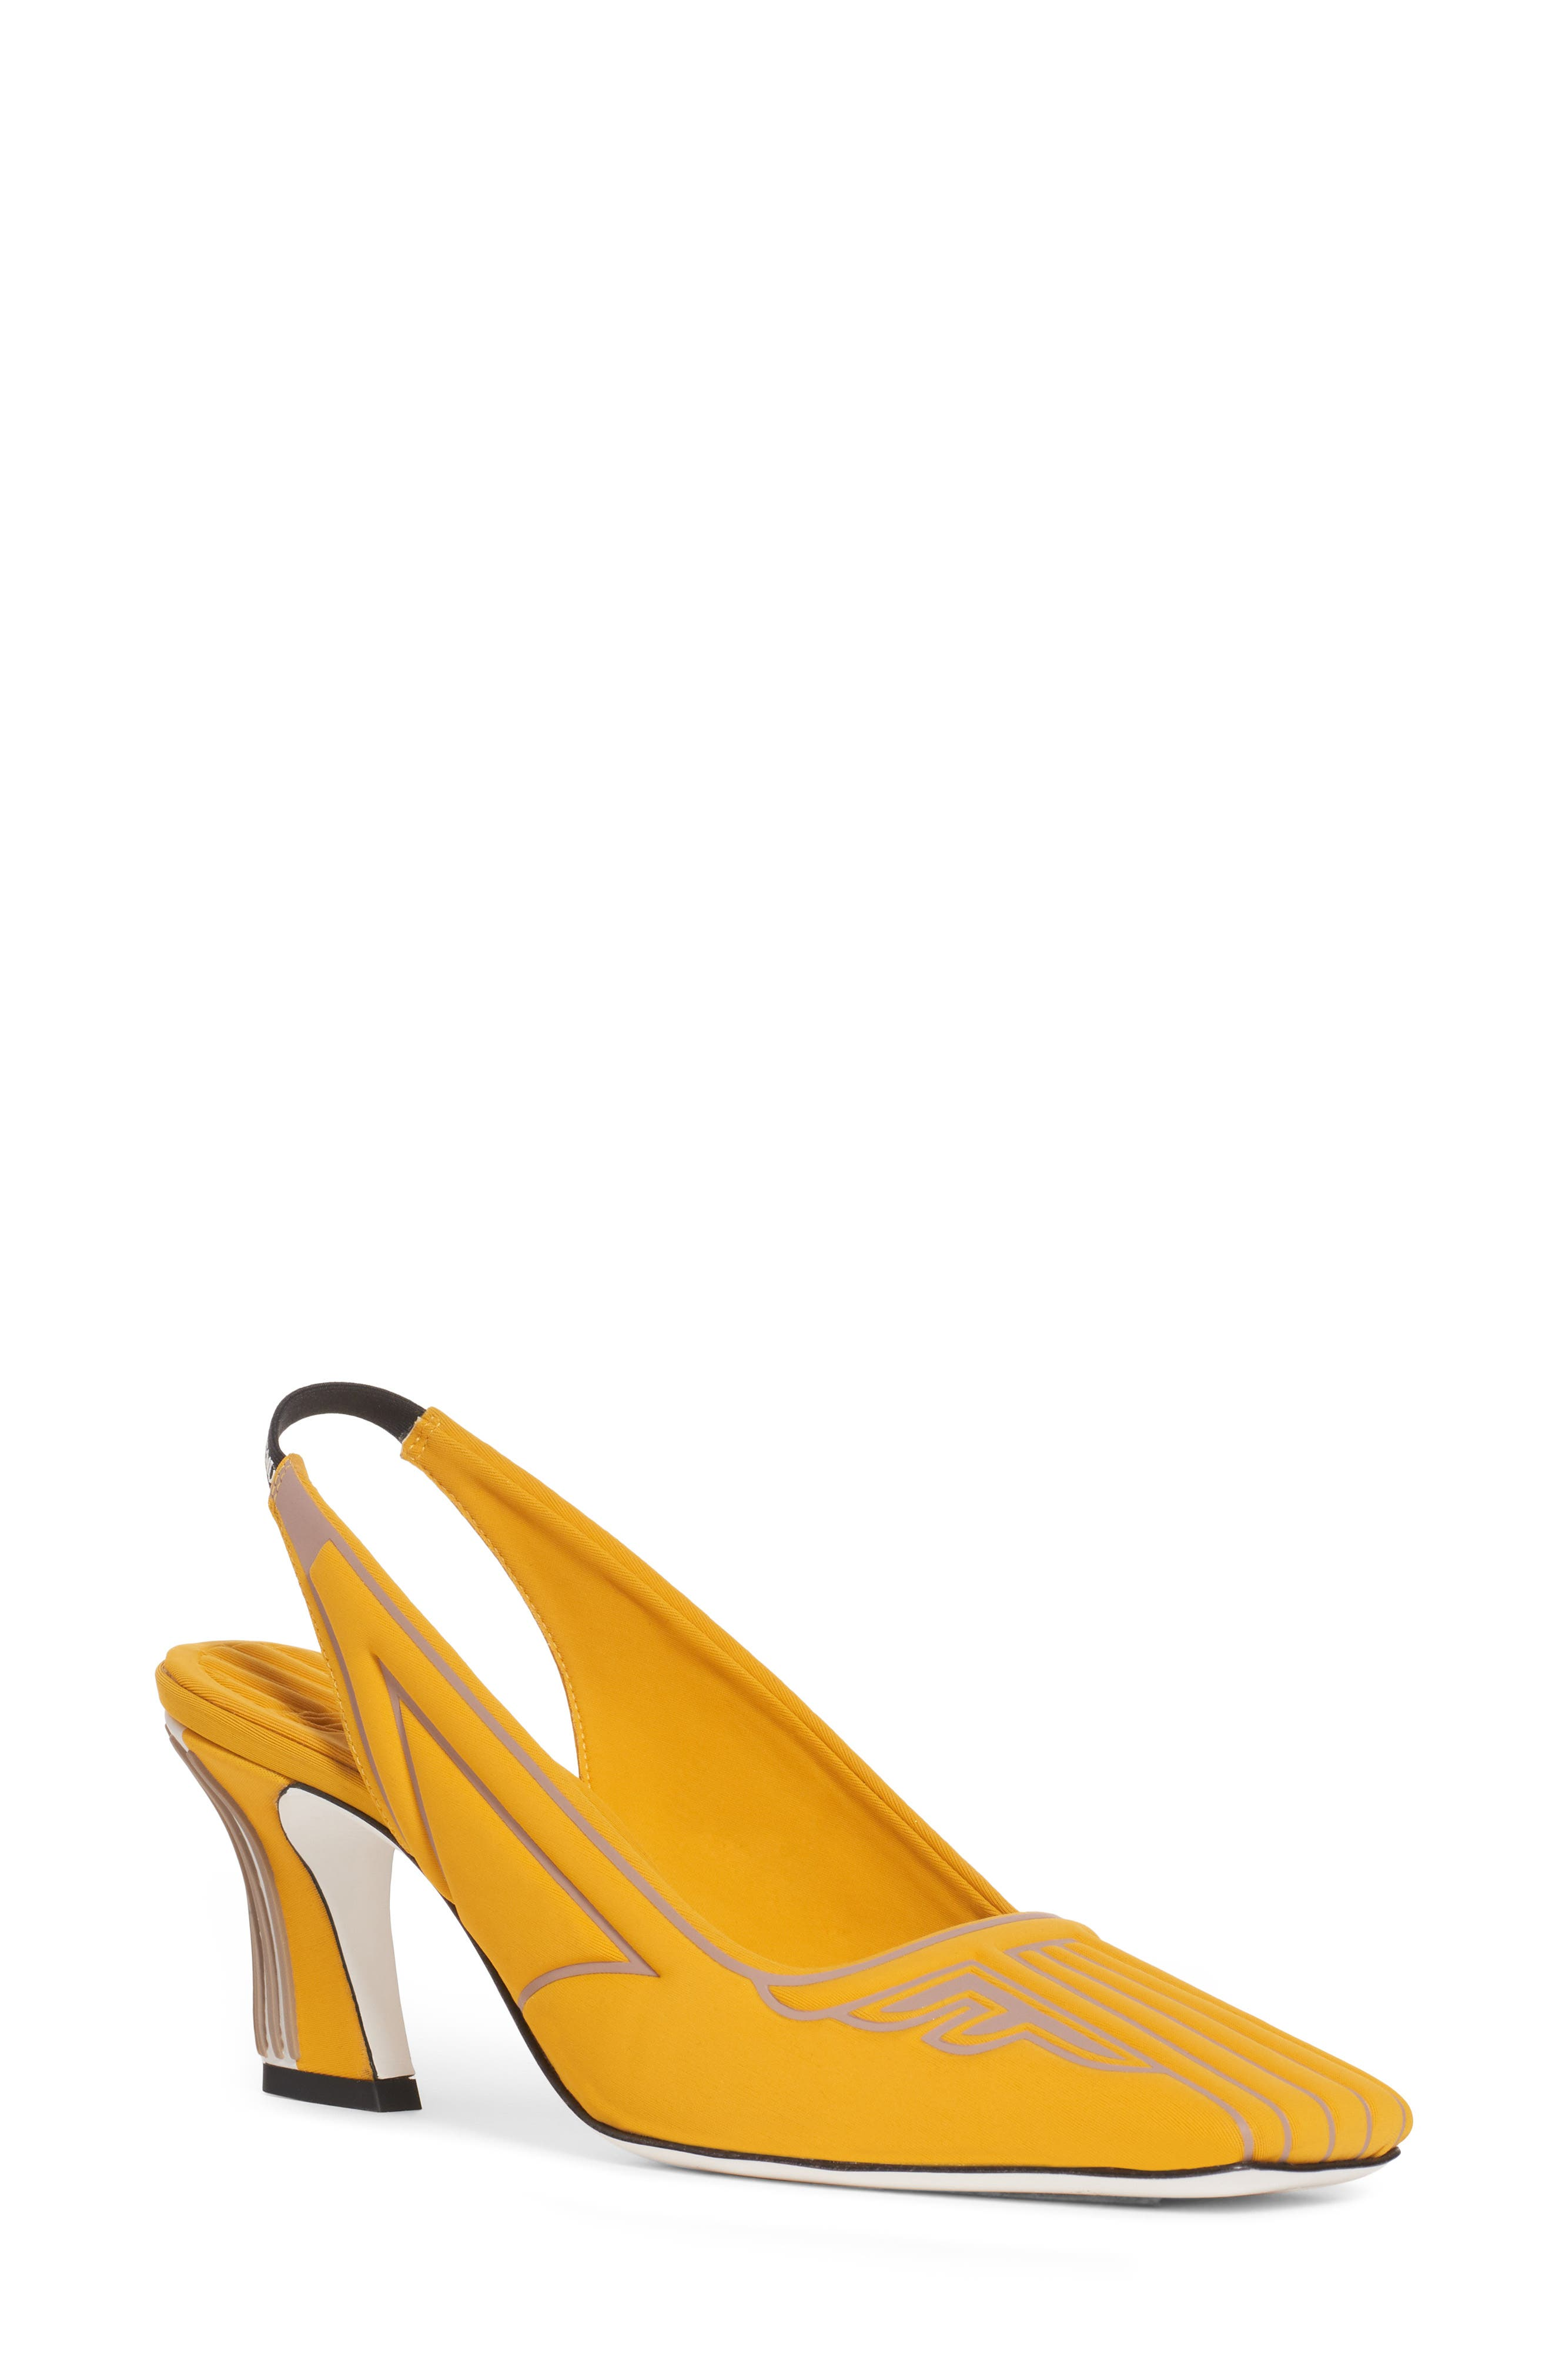 FENDI FFreedom Logo Slingback Pump, Main, color, YELLOW